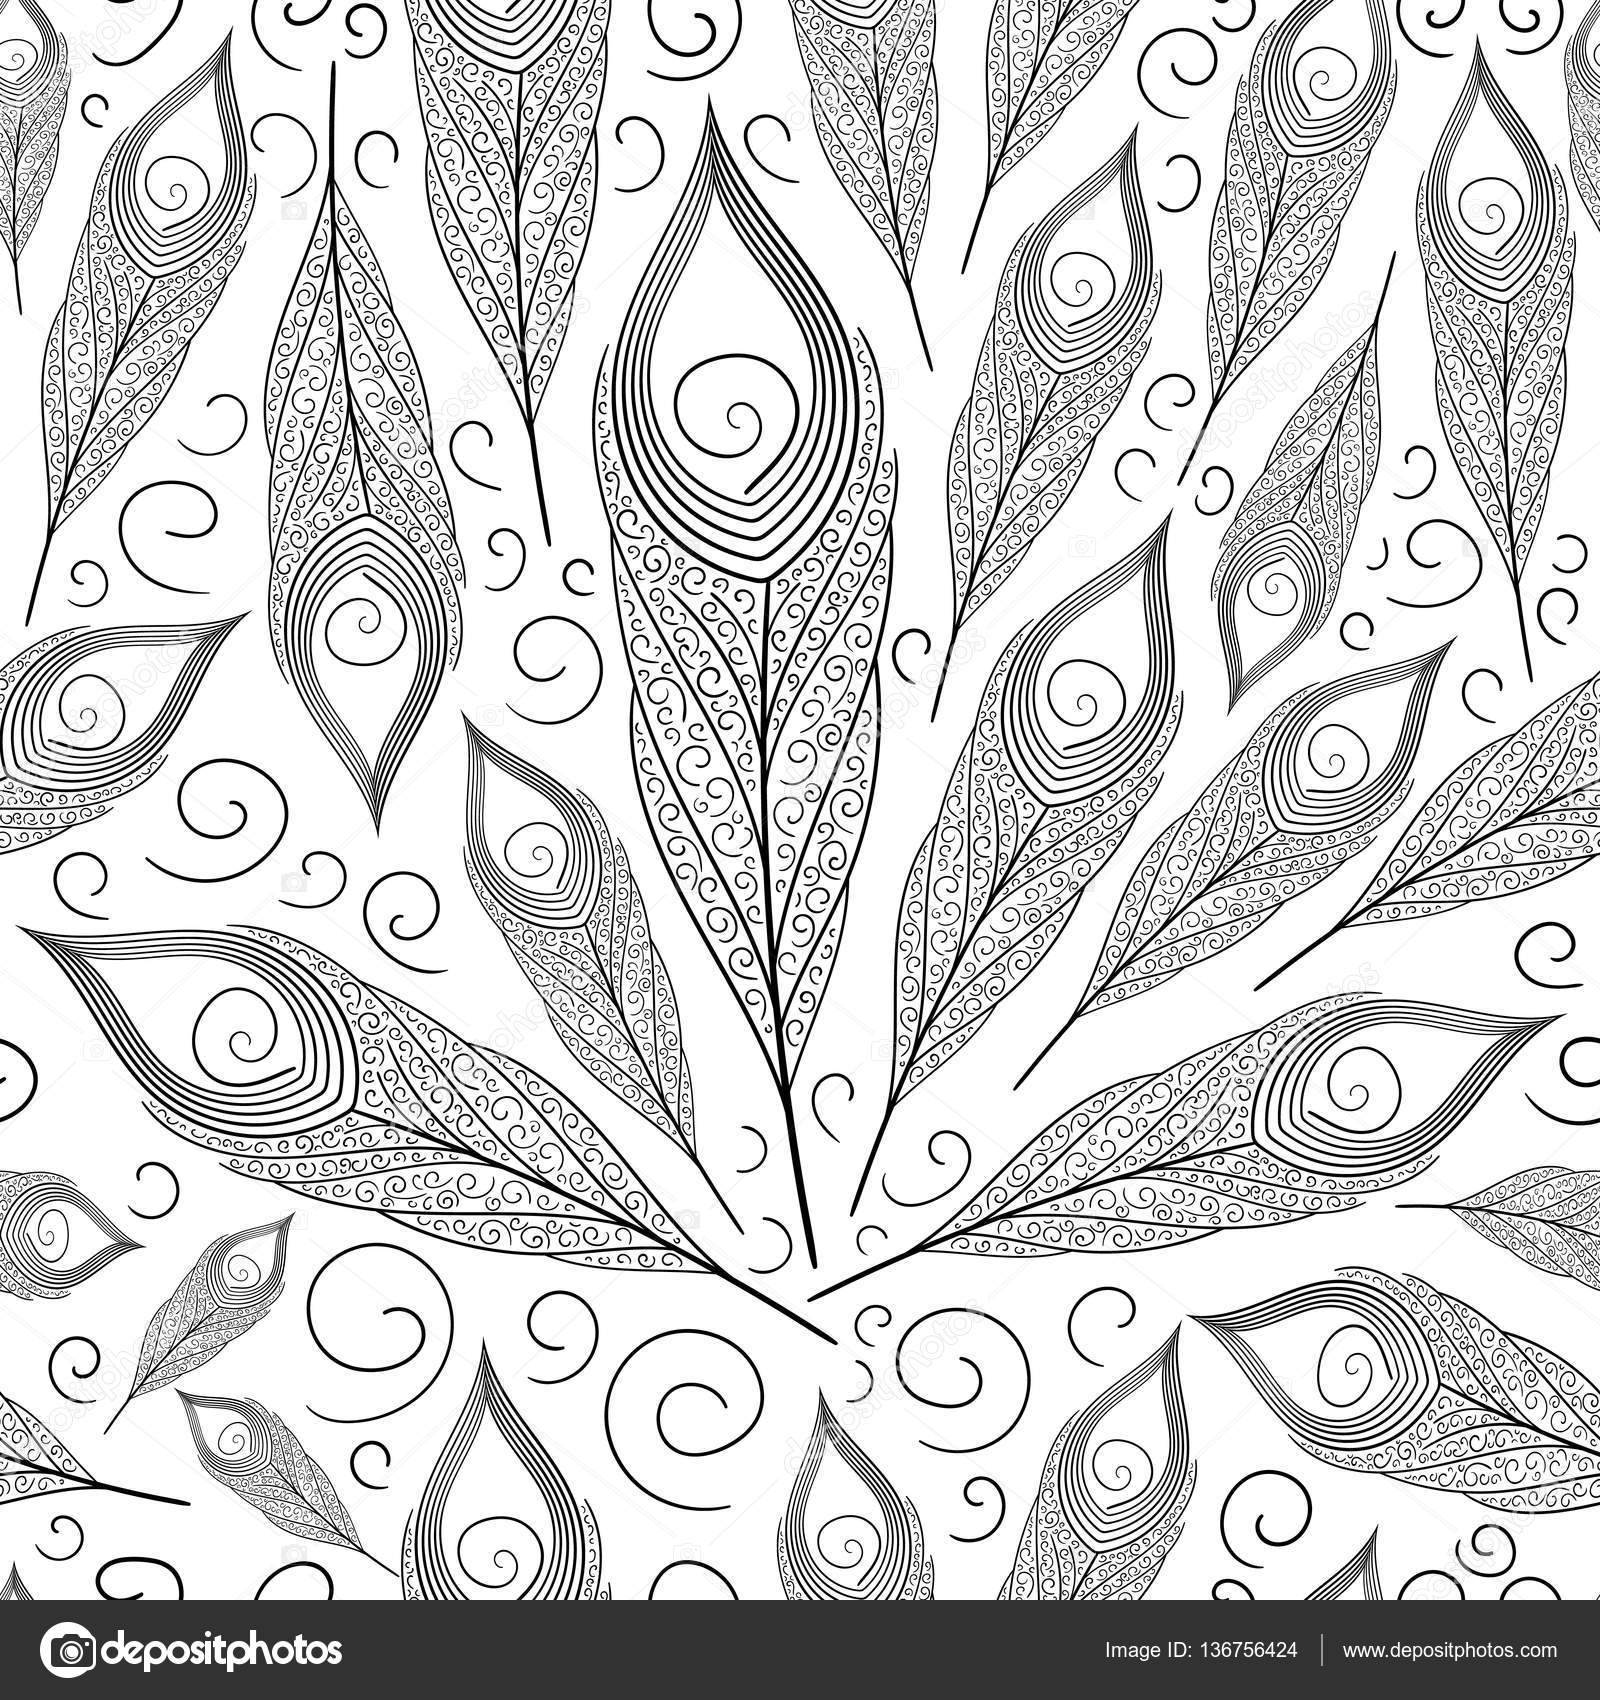 Design For Background Wallpaper Coloring Book Wrapping Paper Or Decoration Elements Vector By Irinelle